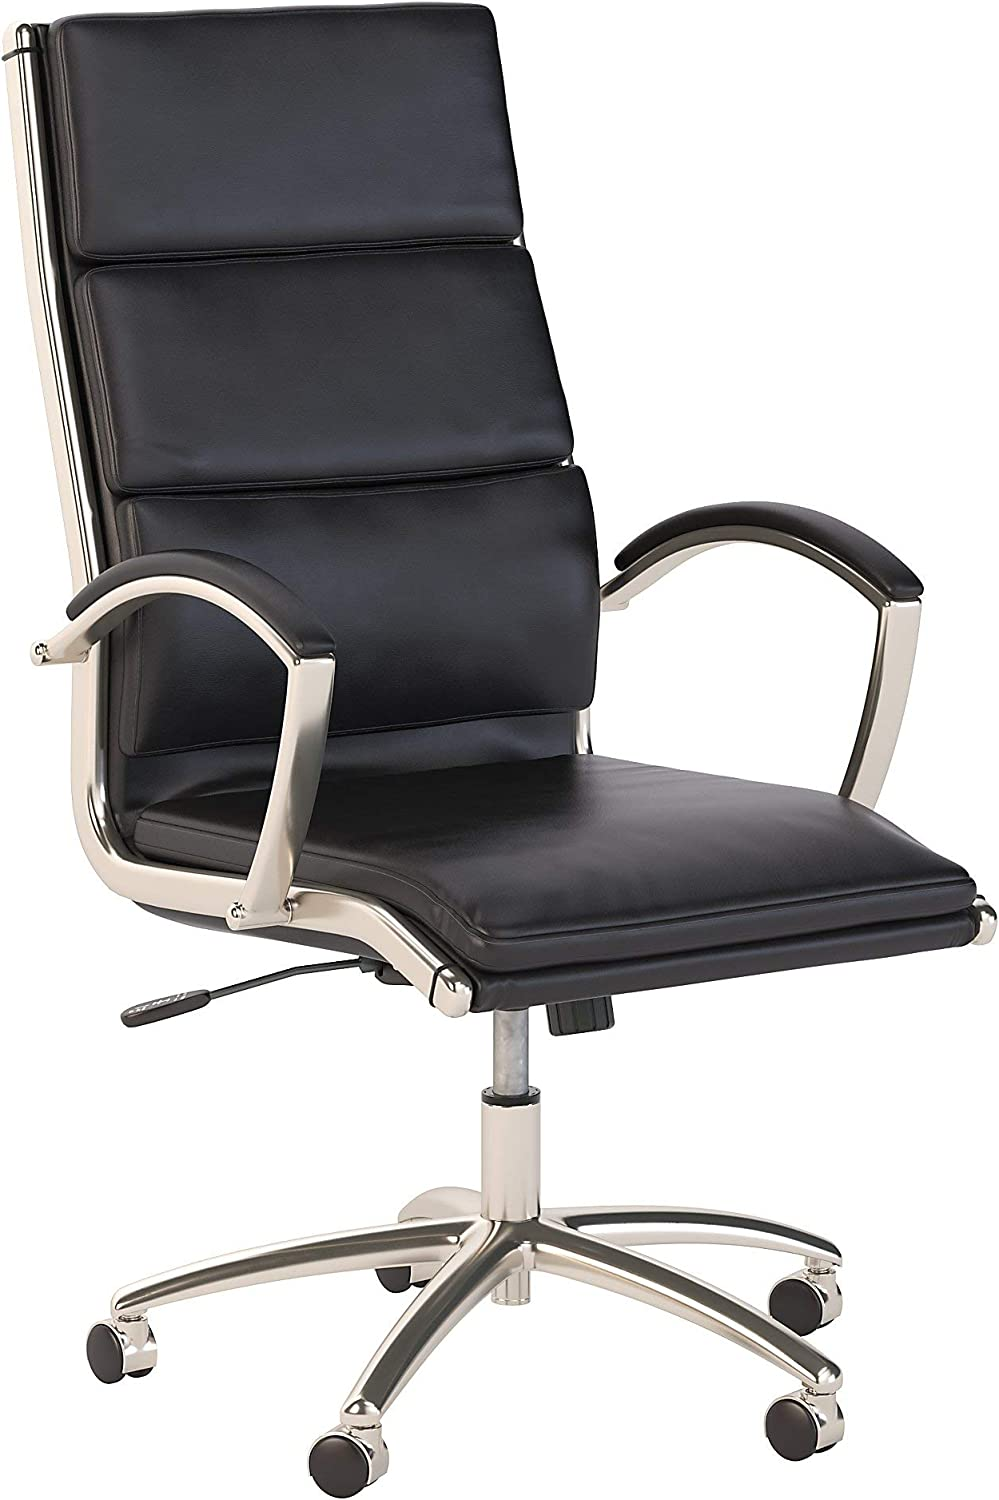 Bush Business Furniture Modelo High Back Leather Executive Office Chair in Black, Black Leather